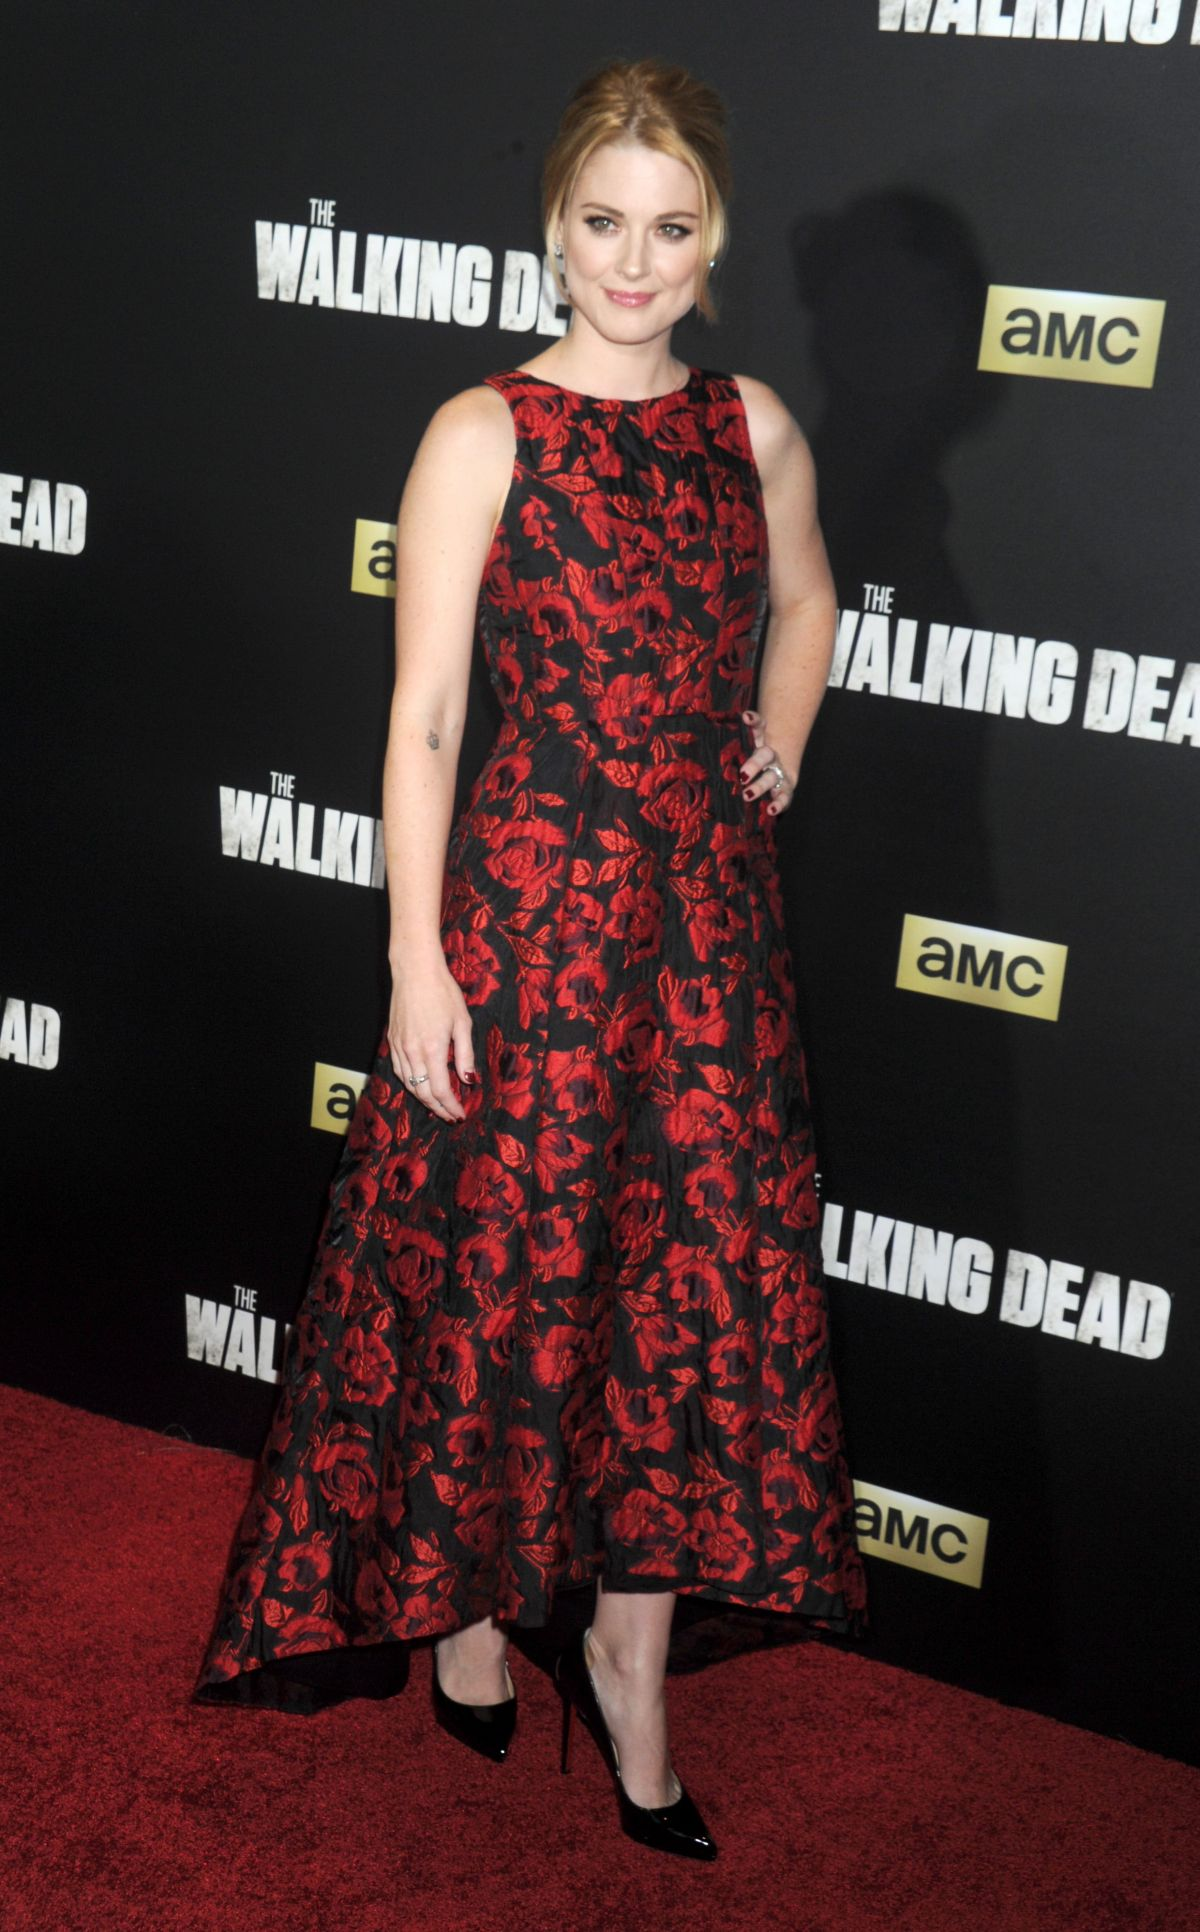 ALEXANDRA BRECKENRIDGE at The Walking Dead Seson 6 Premiere in New York 10/09/2015